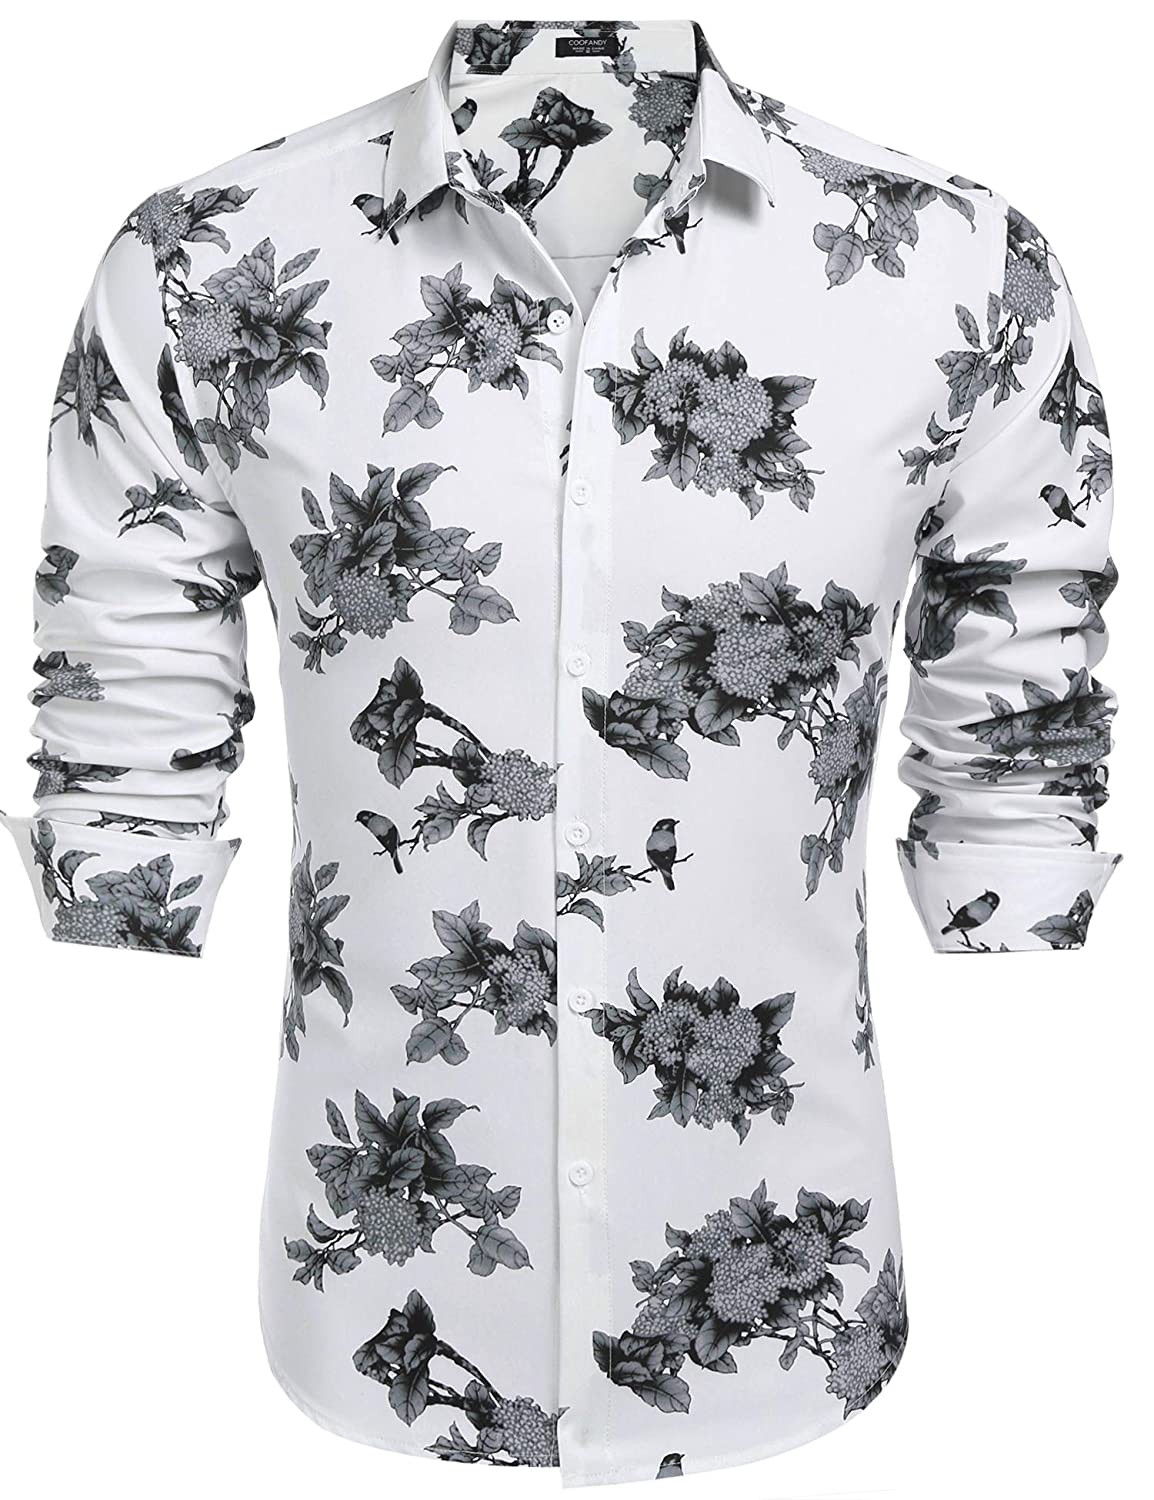 COOFANDY Men's Floral Print Slim Fit Cotton Casual Button Down Shirt EEE007059